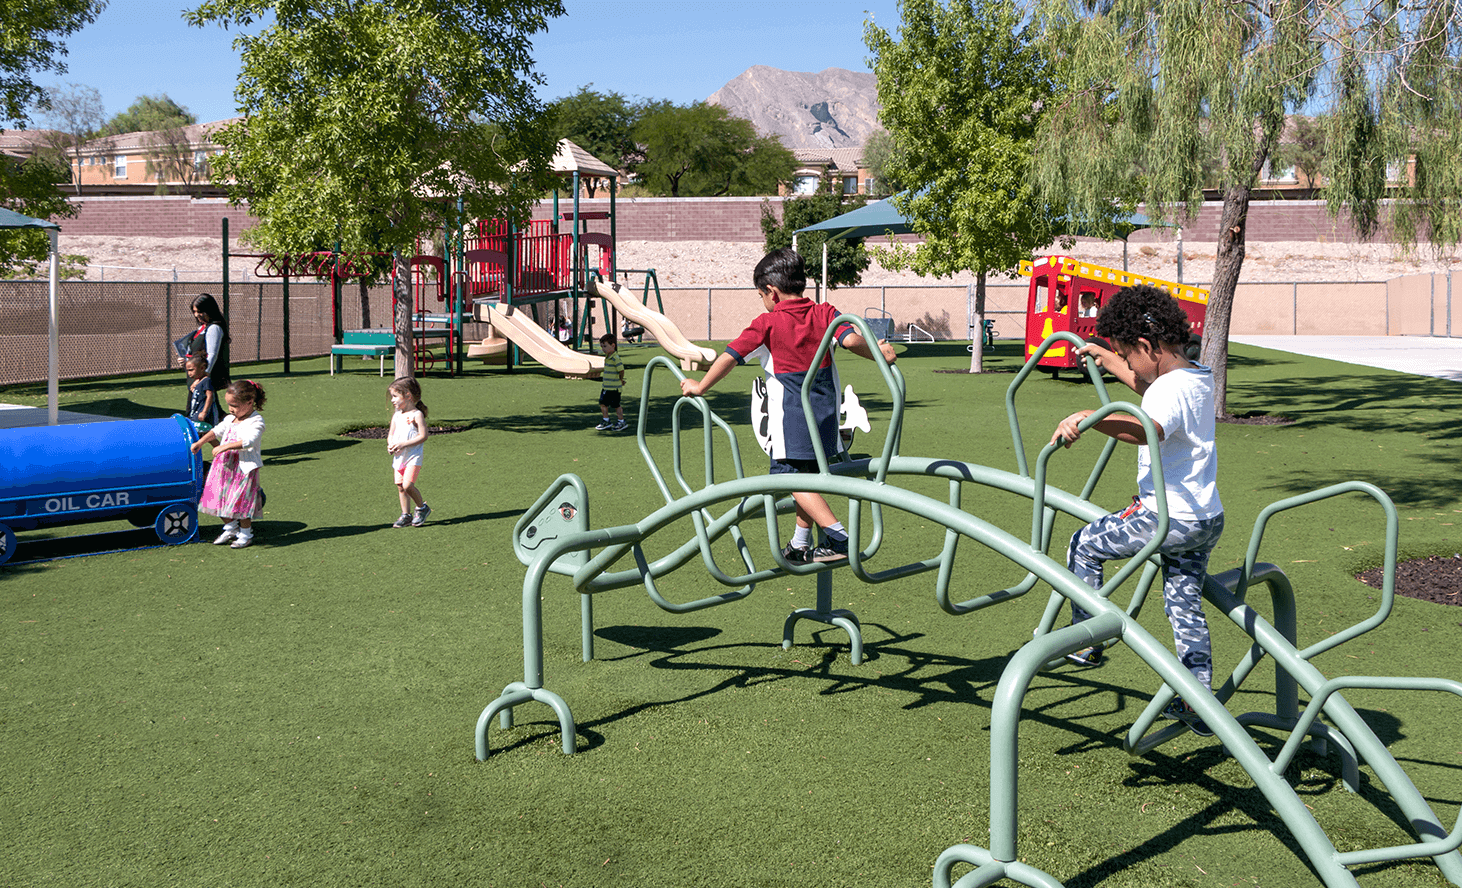 Preschool Playground | Challenger School - Summerlin | Private School In Las Vegas, Nevada